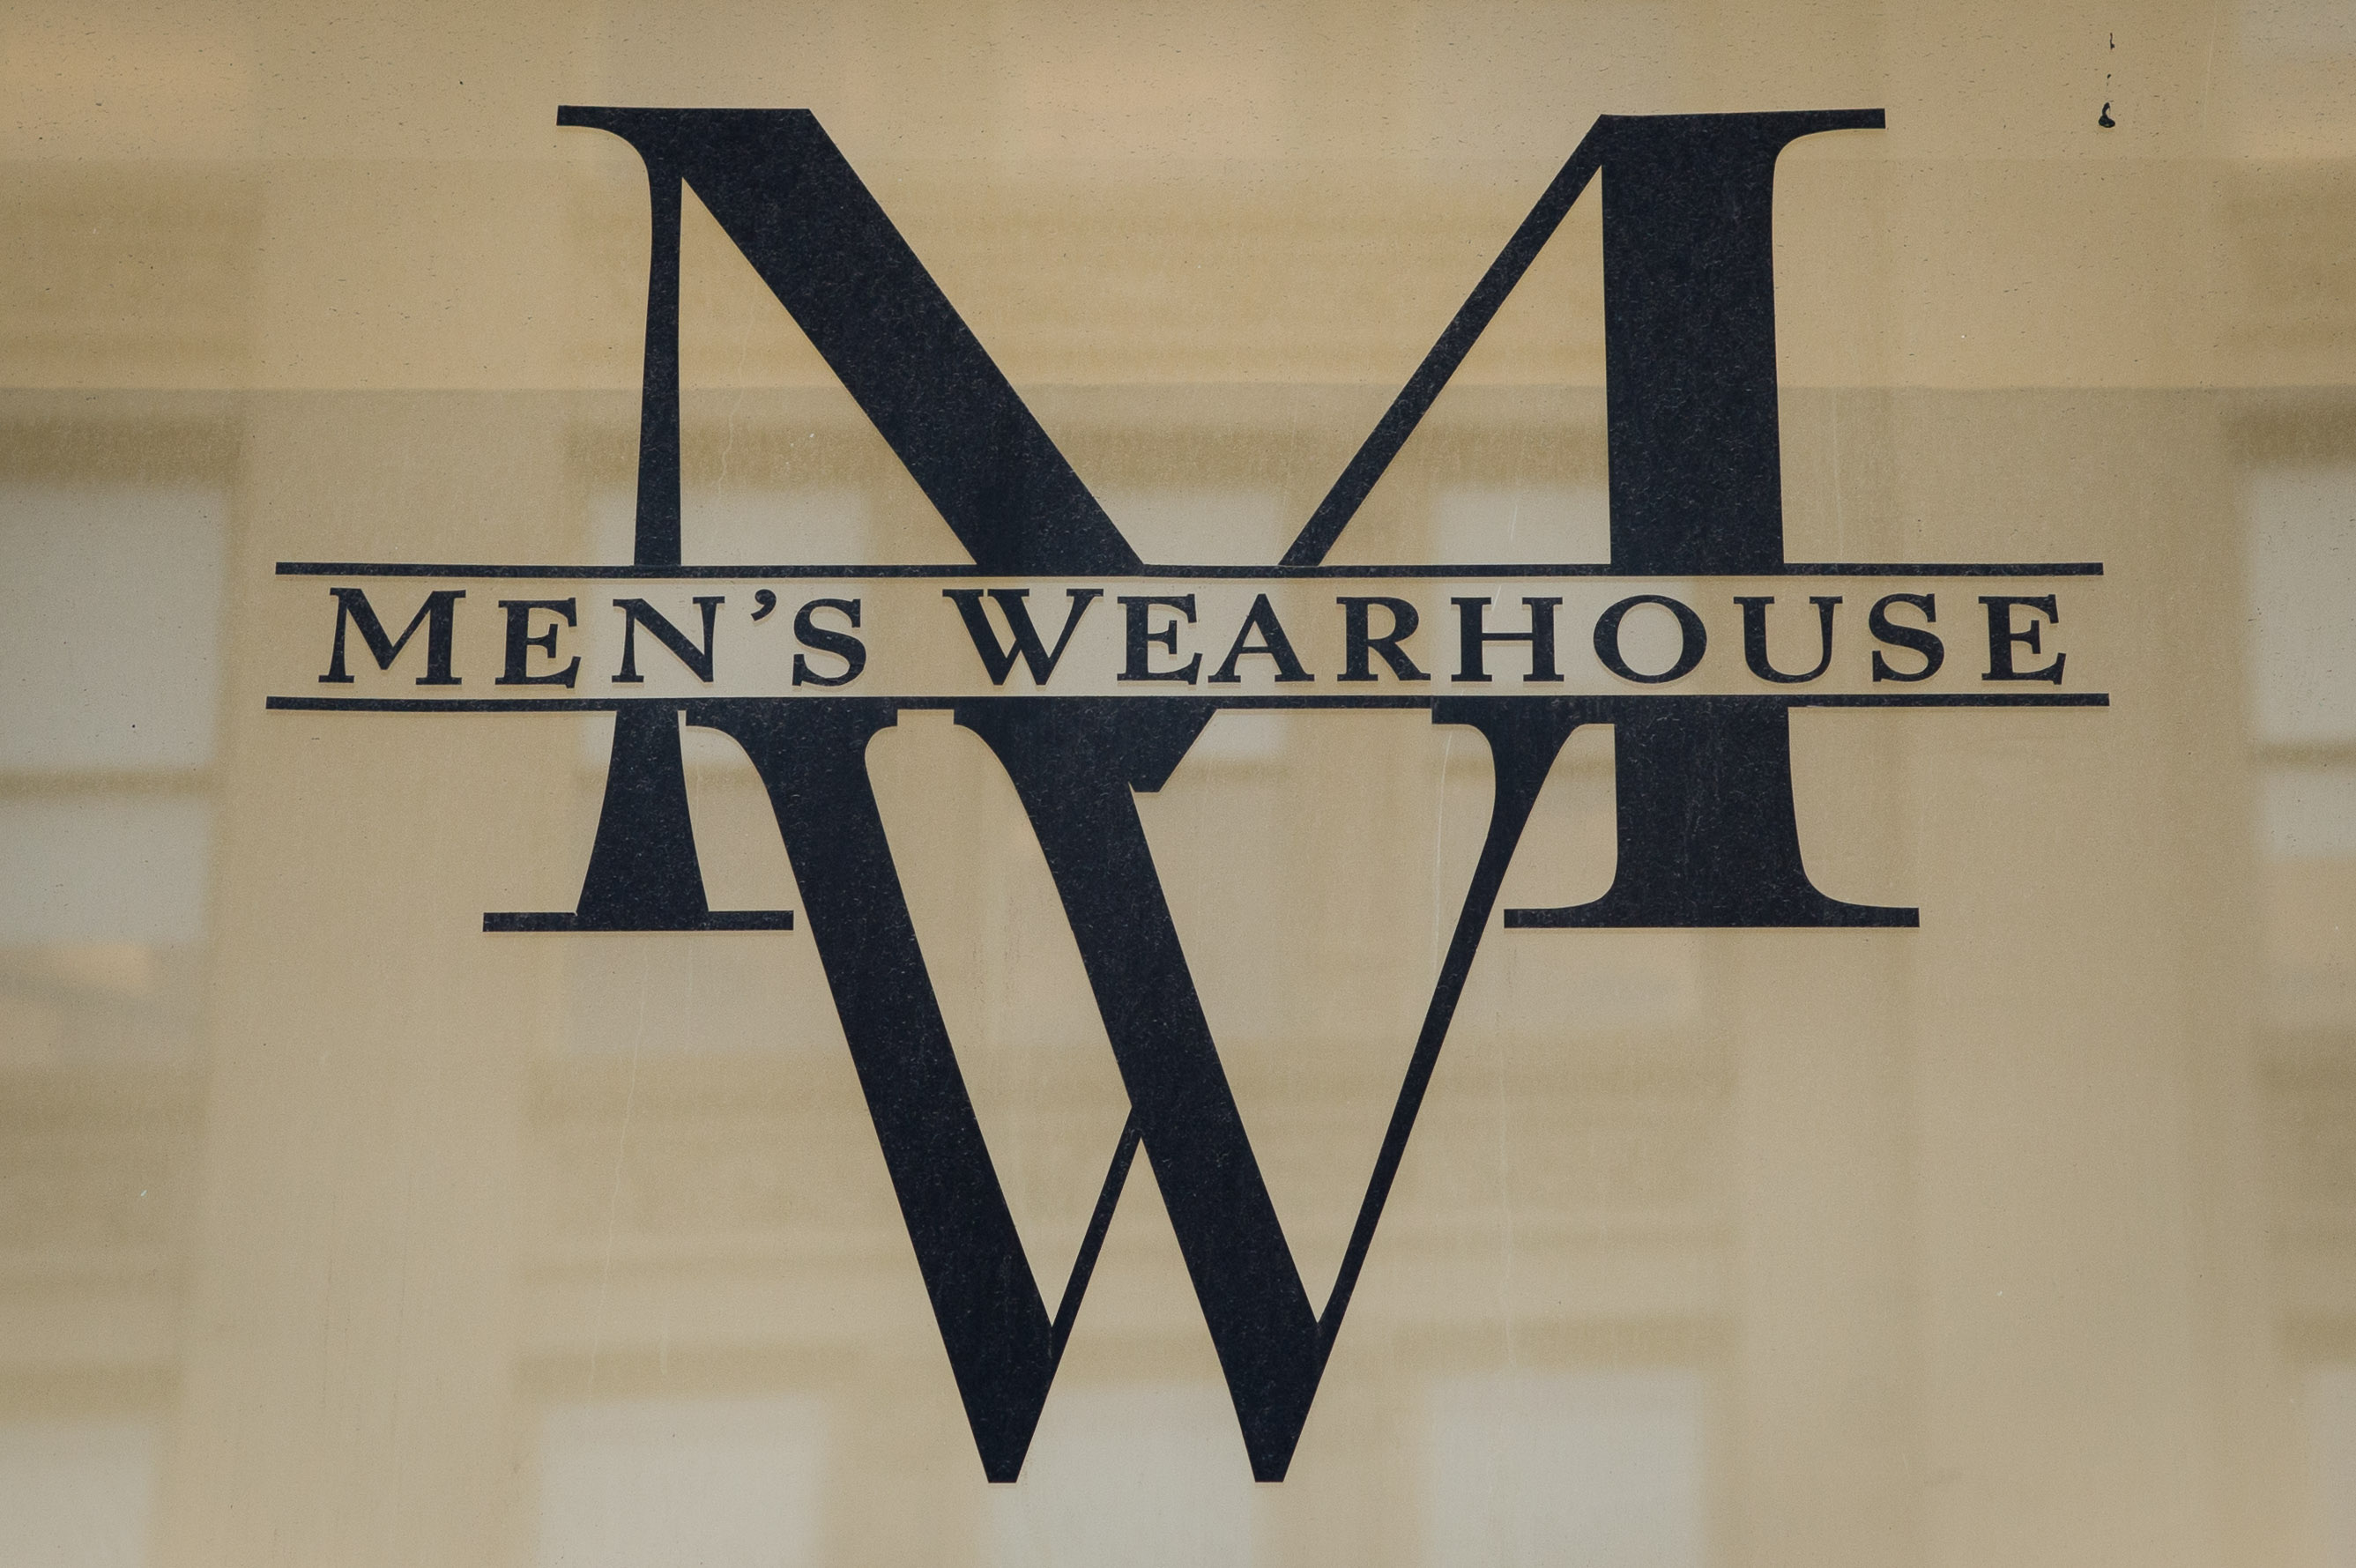 The Men's Wearhouse Inc. logo is displayed outside of a store on 6th Avenue in New York, U.S., on Monday, Dec. 2, 2013.